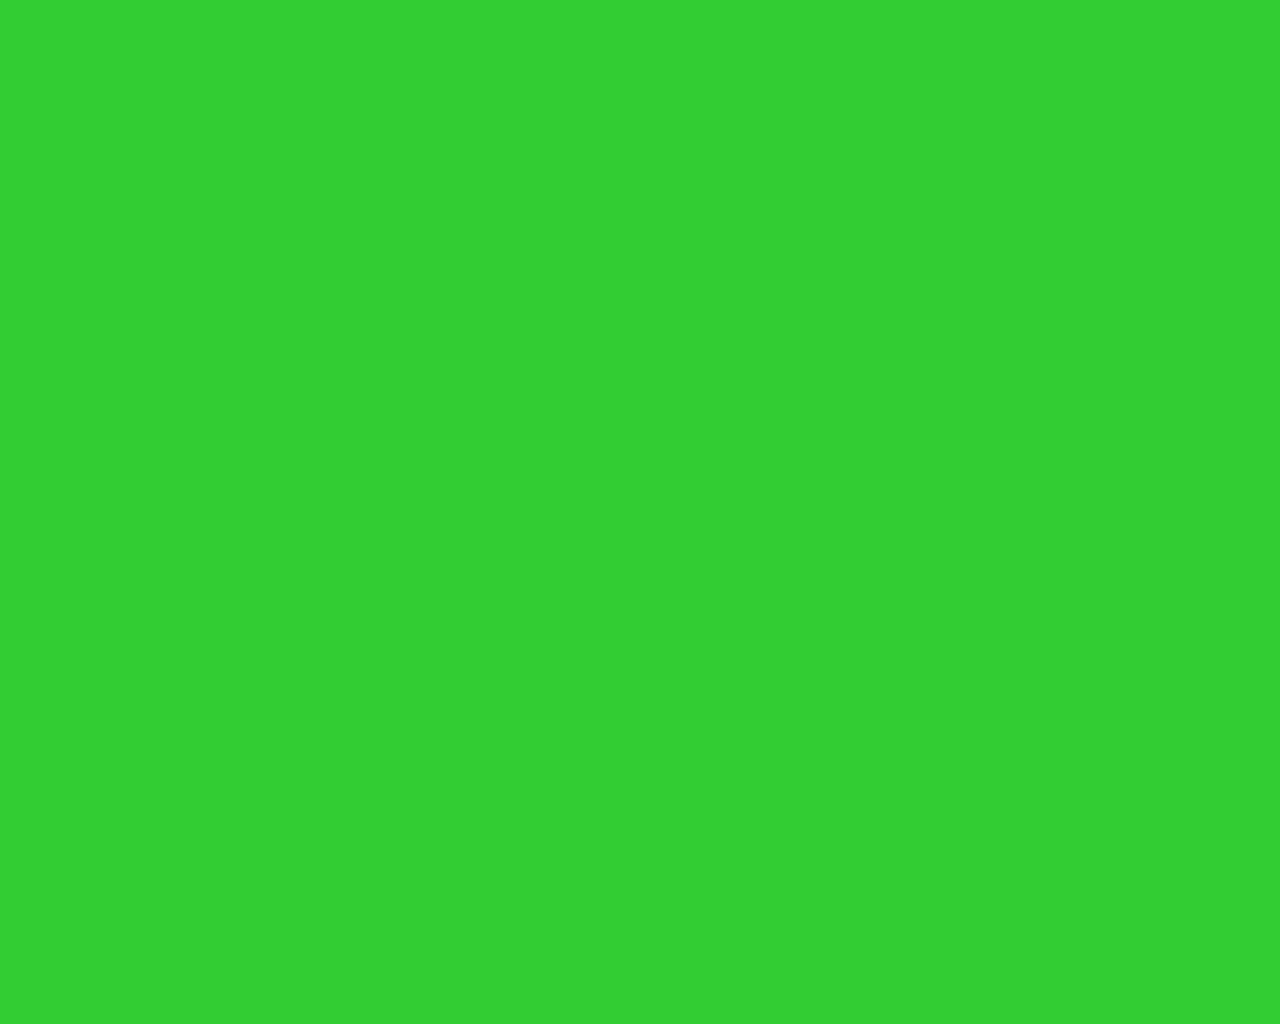 solid bright green background - photo #26